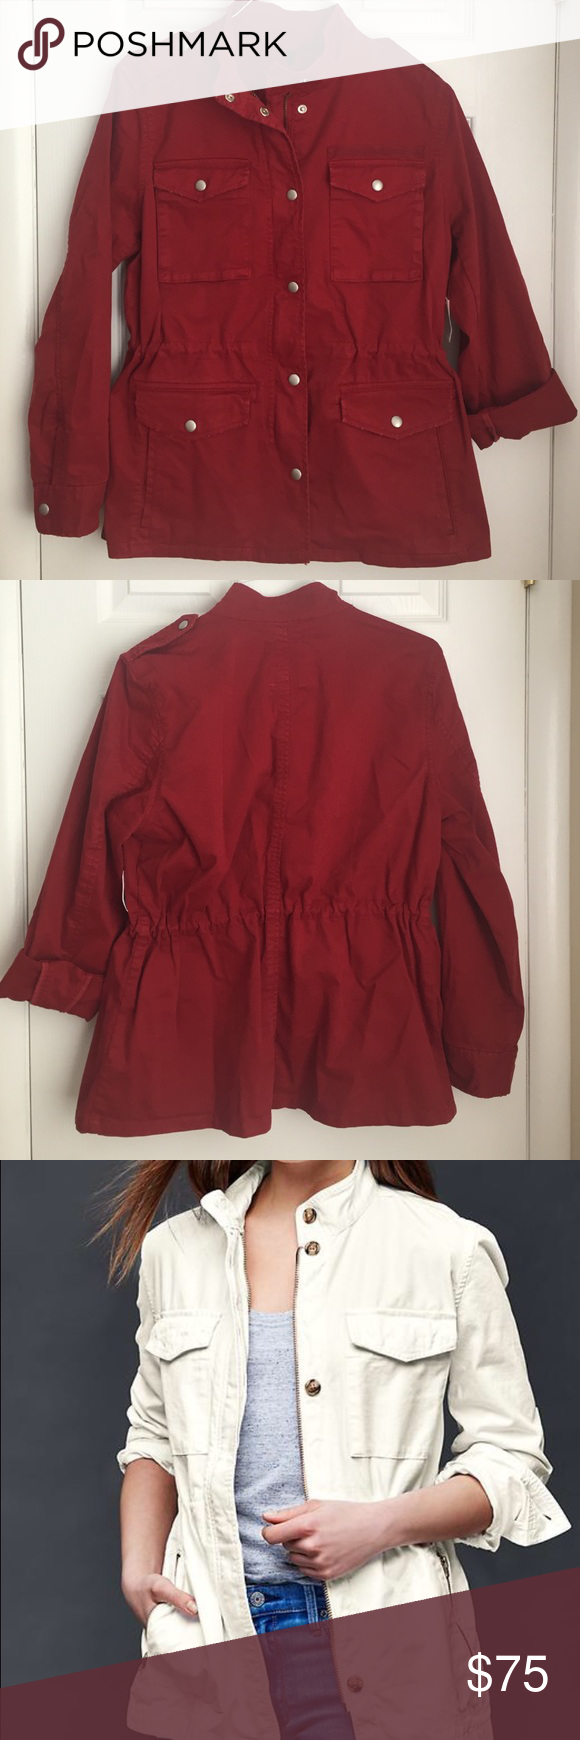 Gap utility jacket NWT red GAP utility jacket. 4 button front pockets and two additional side pockets. Rollin sleeves. Sold out online and in stores. Gap Jackets & Coats Utility Jackets